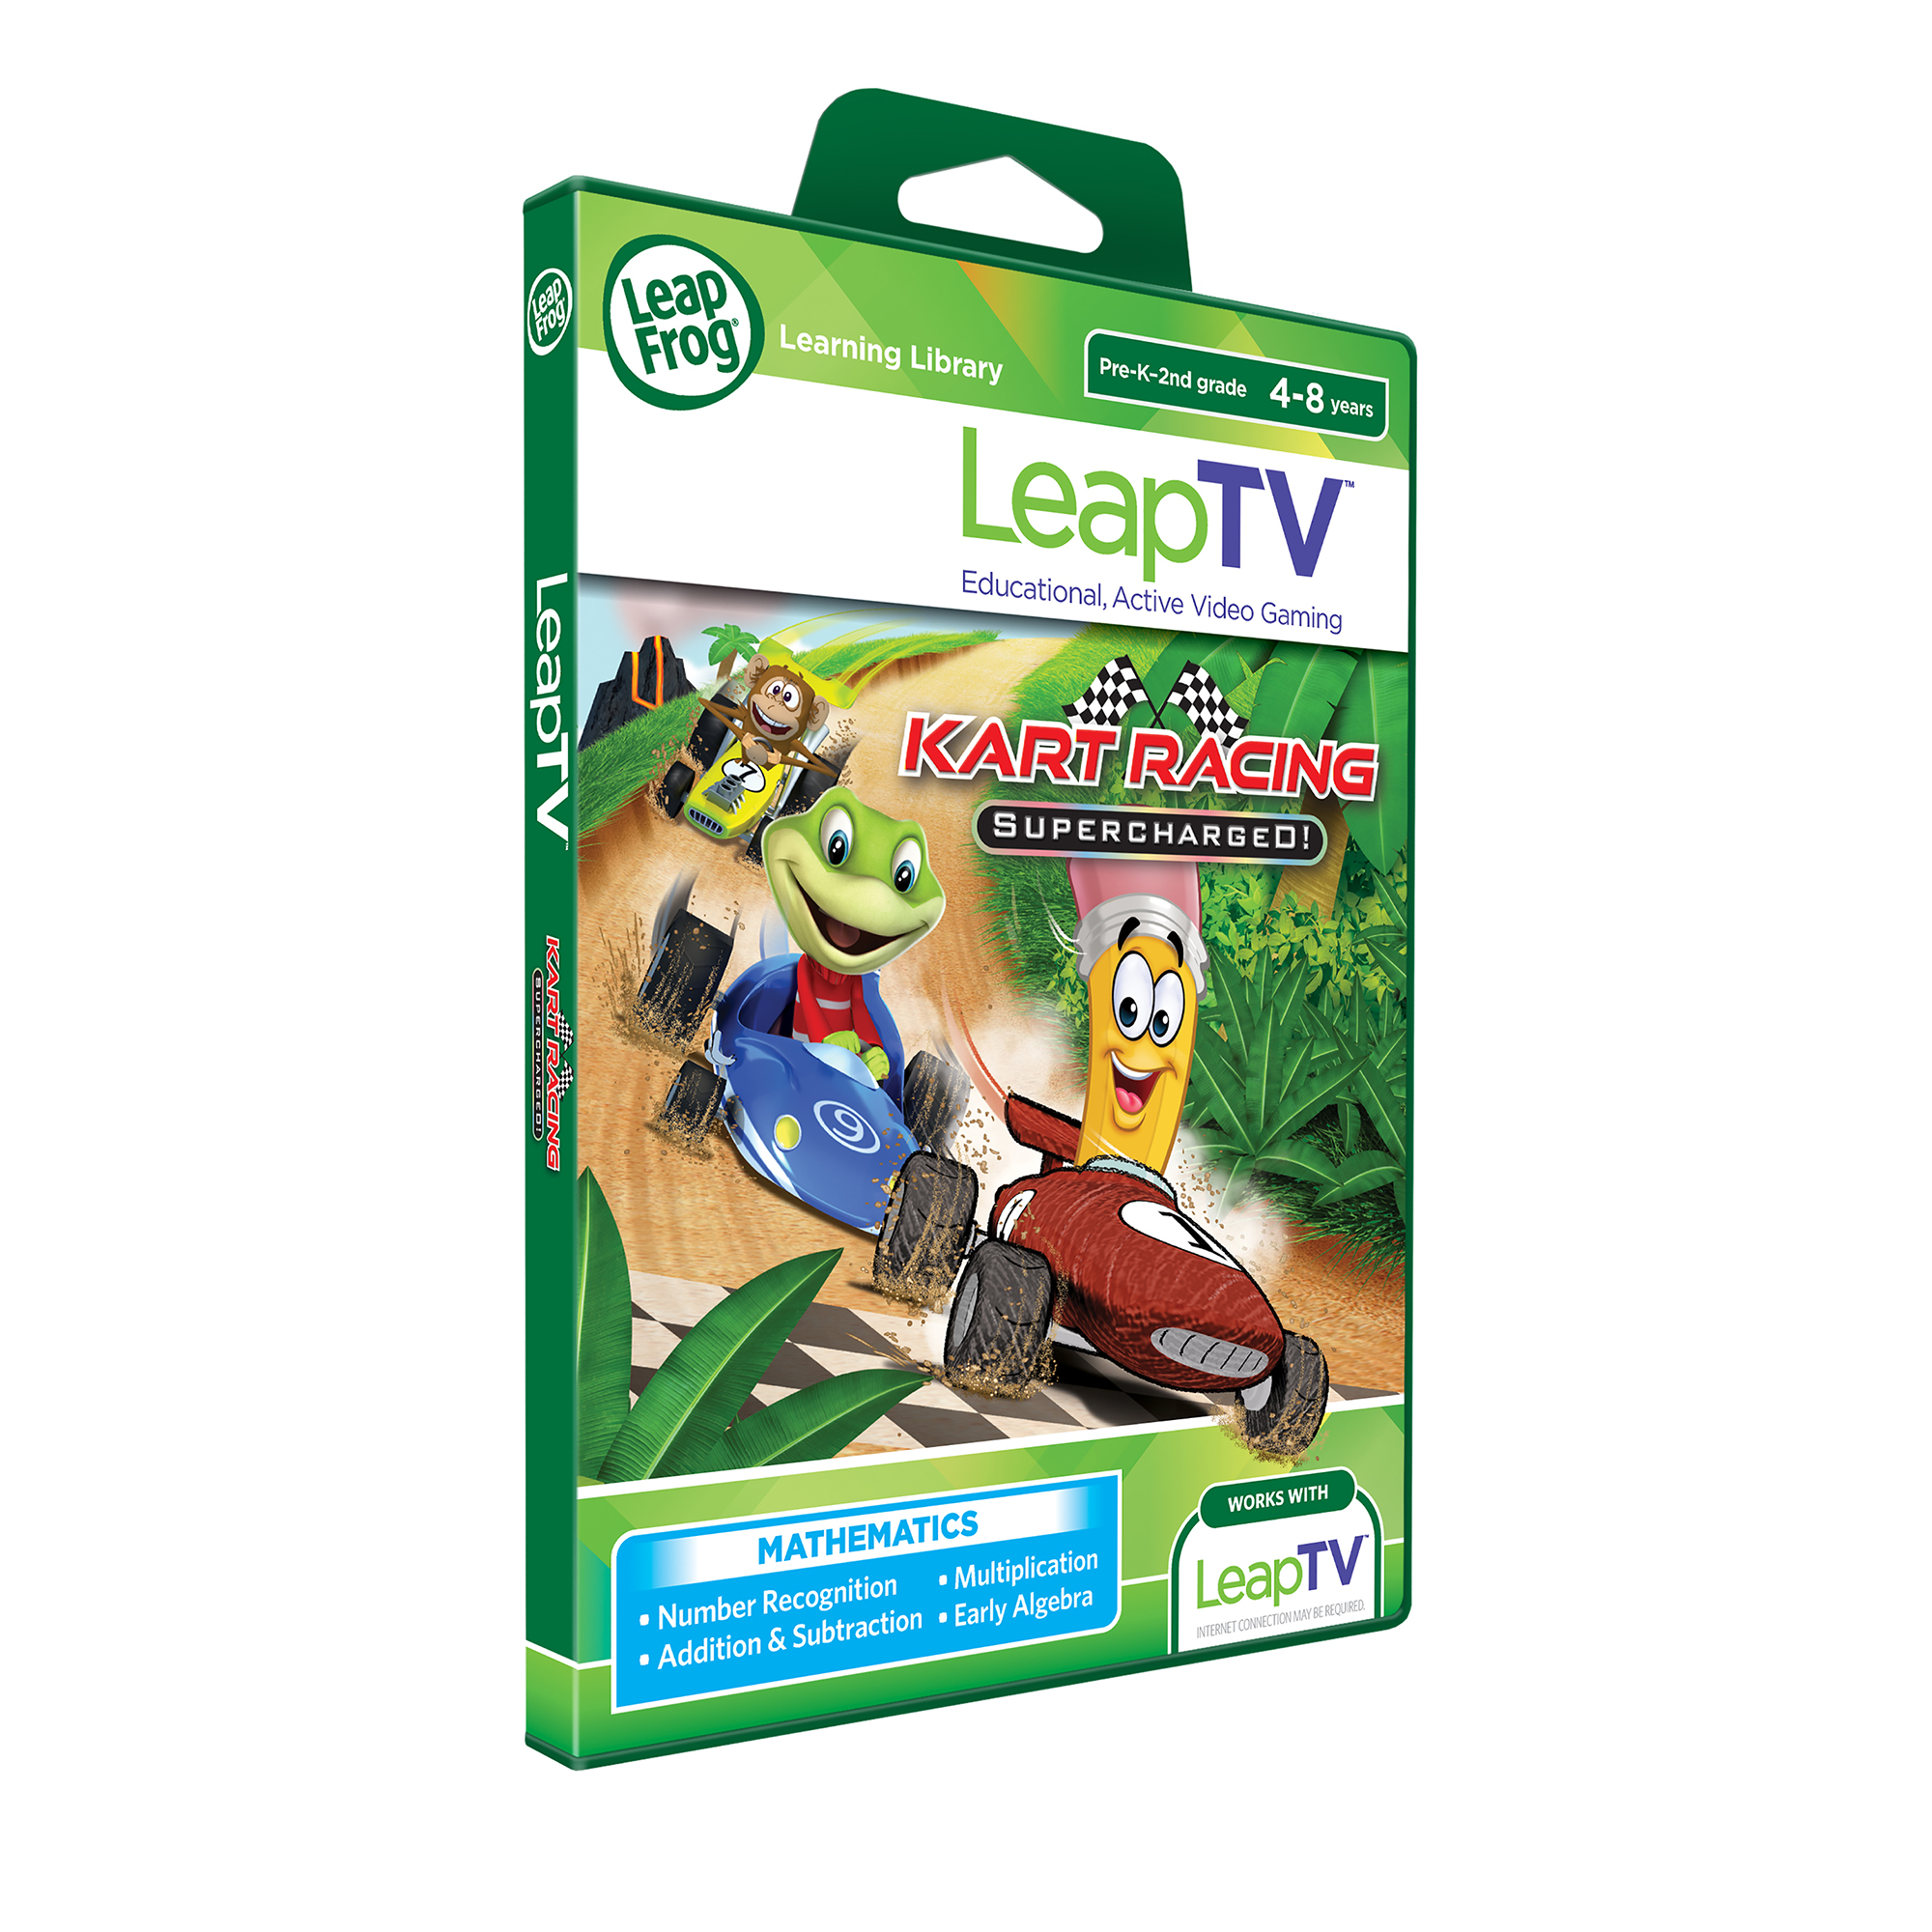 LeapFrog Kart Racing LeapTV Software